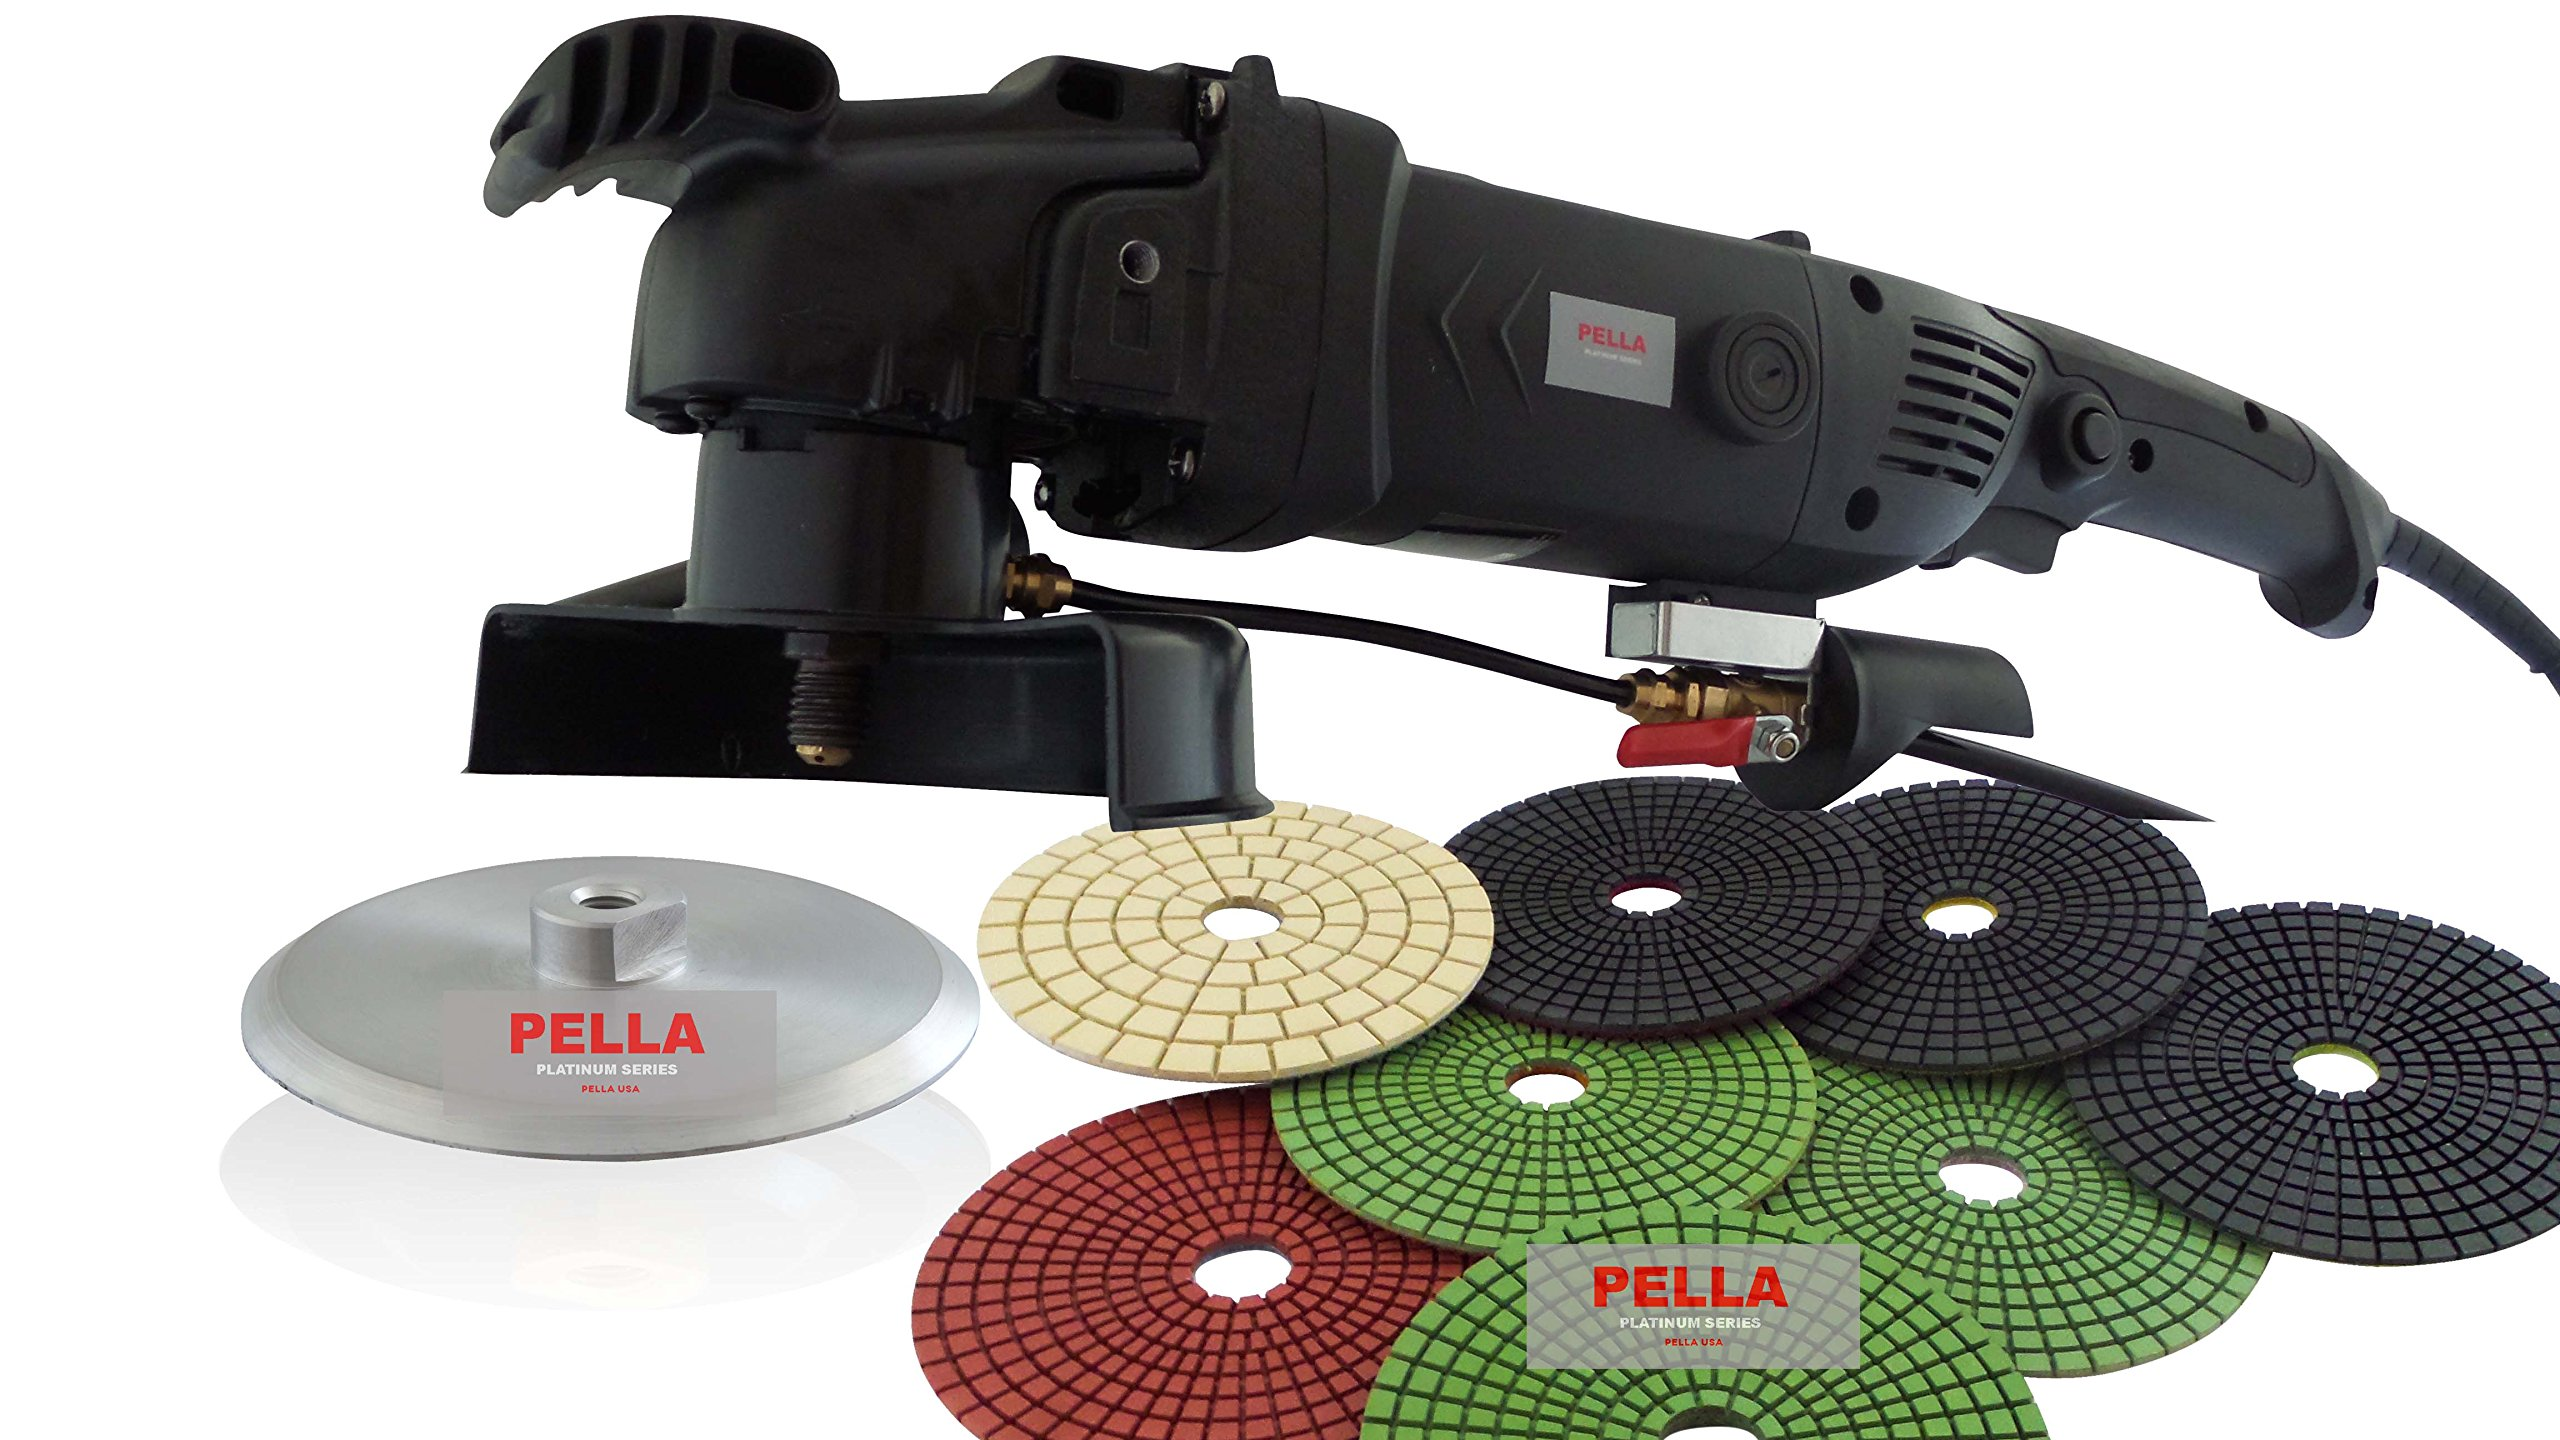 PELLA USA 1200 WATT HEAVY DUTY GRANITE POLISHER WITH 5'' 8PC PADS AND 5'' ALUMINUM BACKER PAD